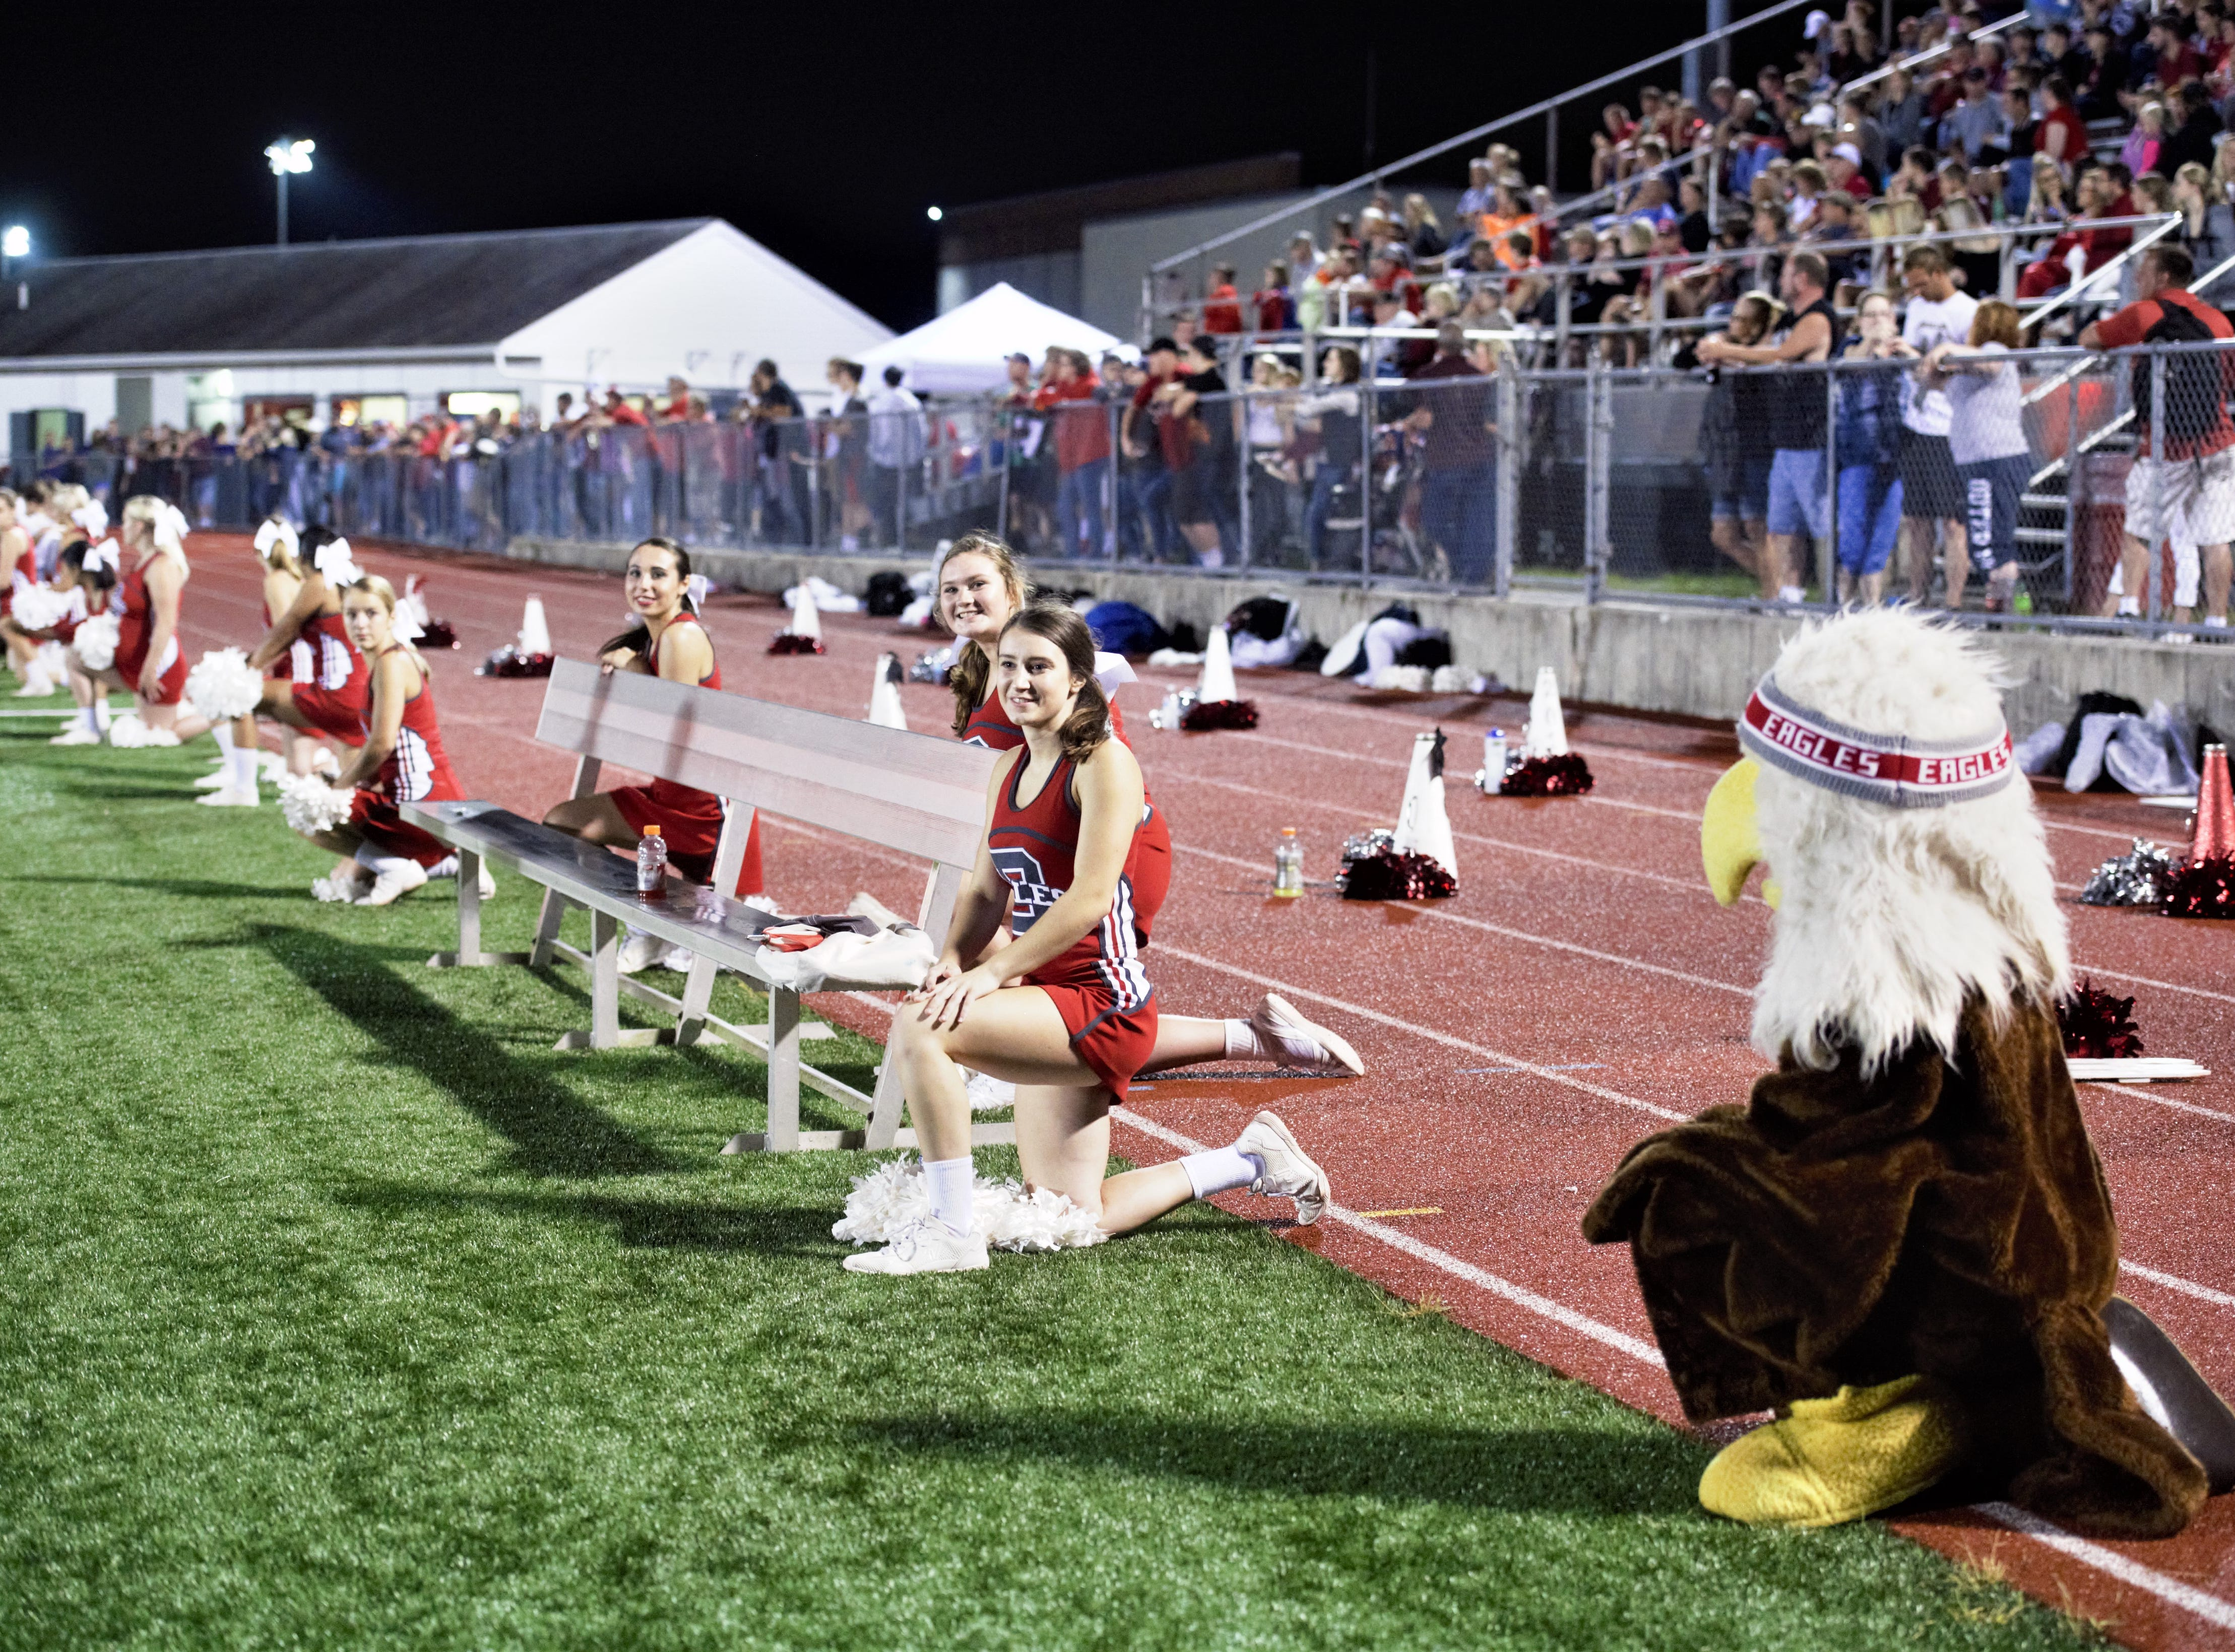 Bermudian Springs cheerleaders and mascot take a knee for an injured player on the field on Aug. 31, 2018. The Eagles came out on top in their home game against the Bubblers, 27-12.